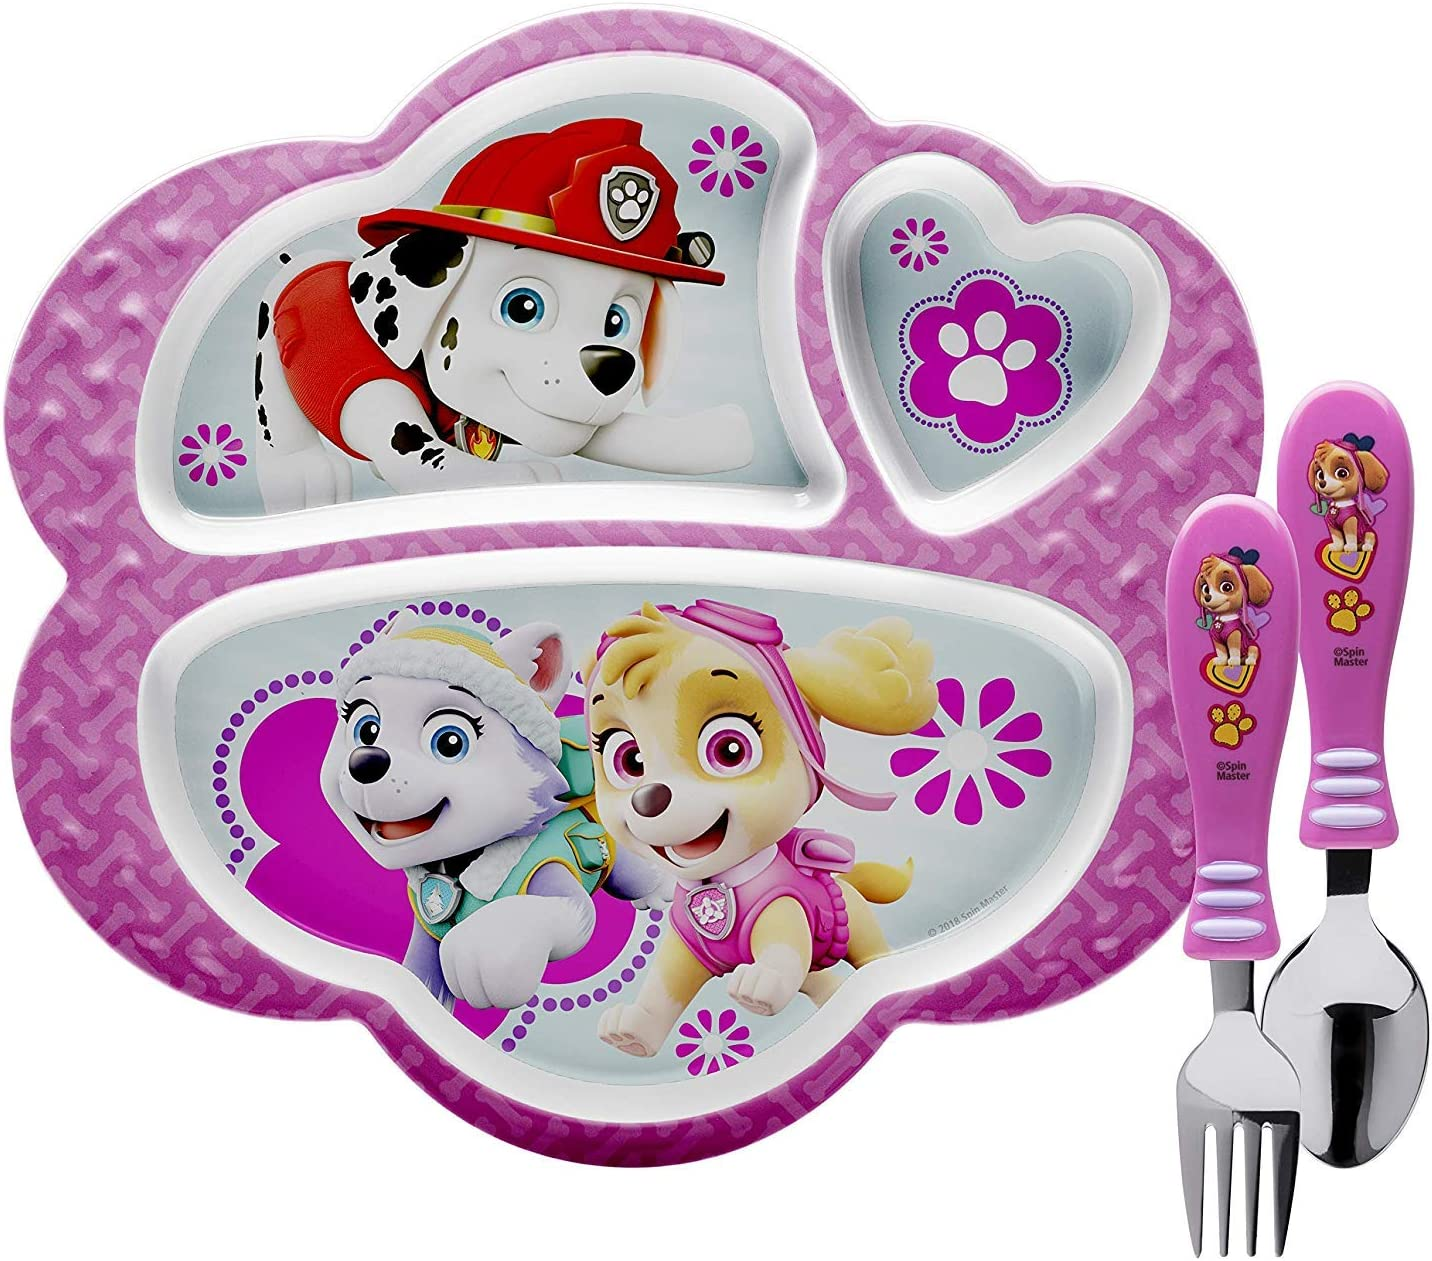 Skye /& Everest, 3 Piece Set, BPA-Free Flatware, Zak Designs Paw Patrol Dinnerware Includes Melamine 3-Section Divided Plate and Utensil Made of Durable Material and Perfect for Kids